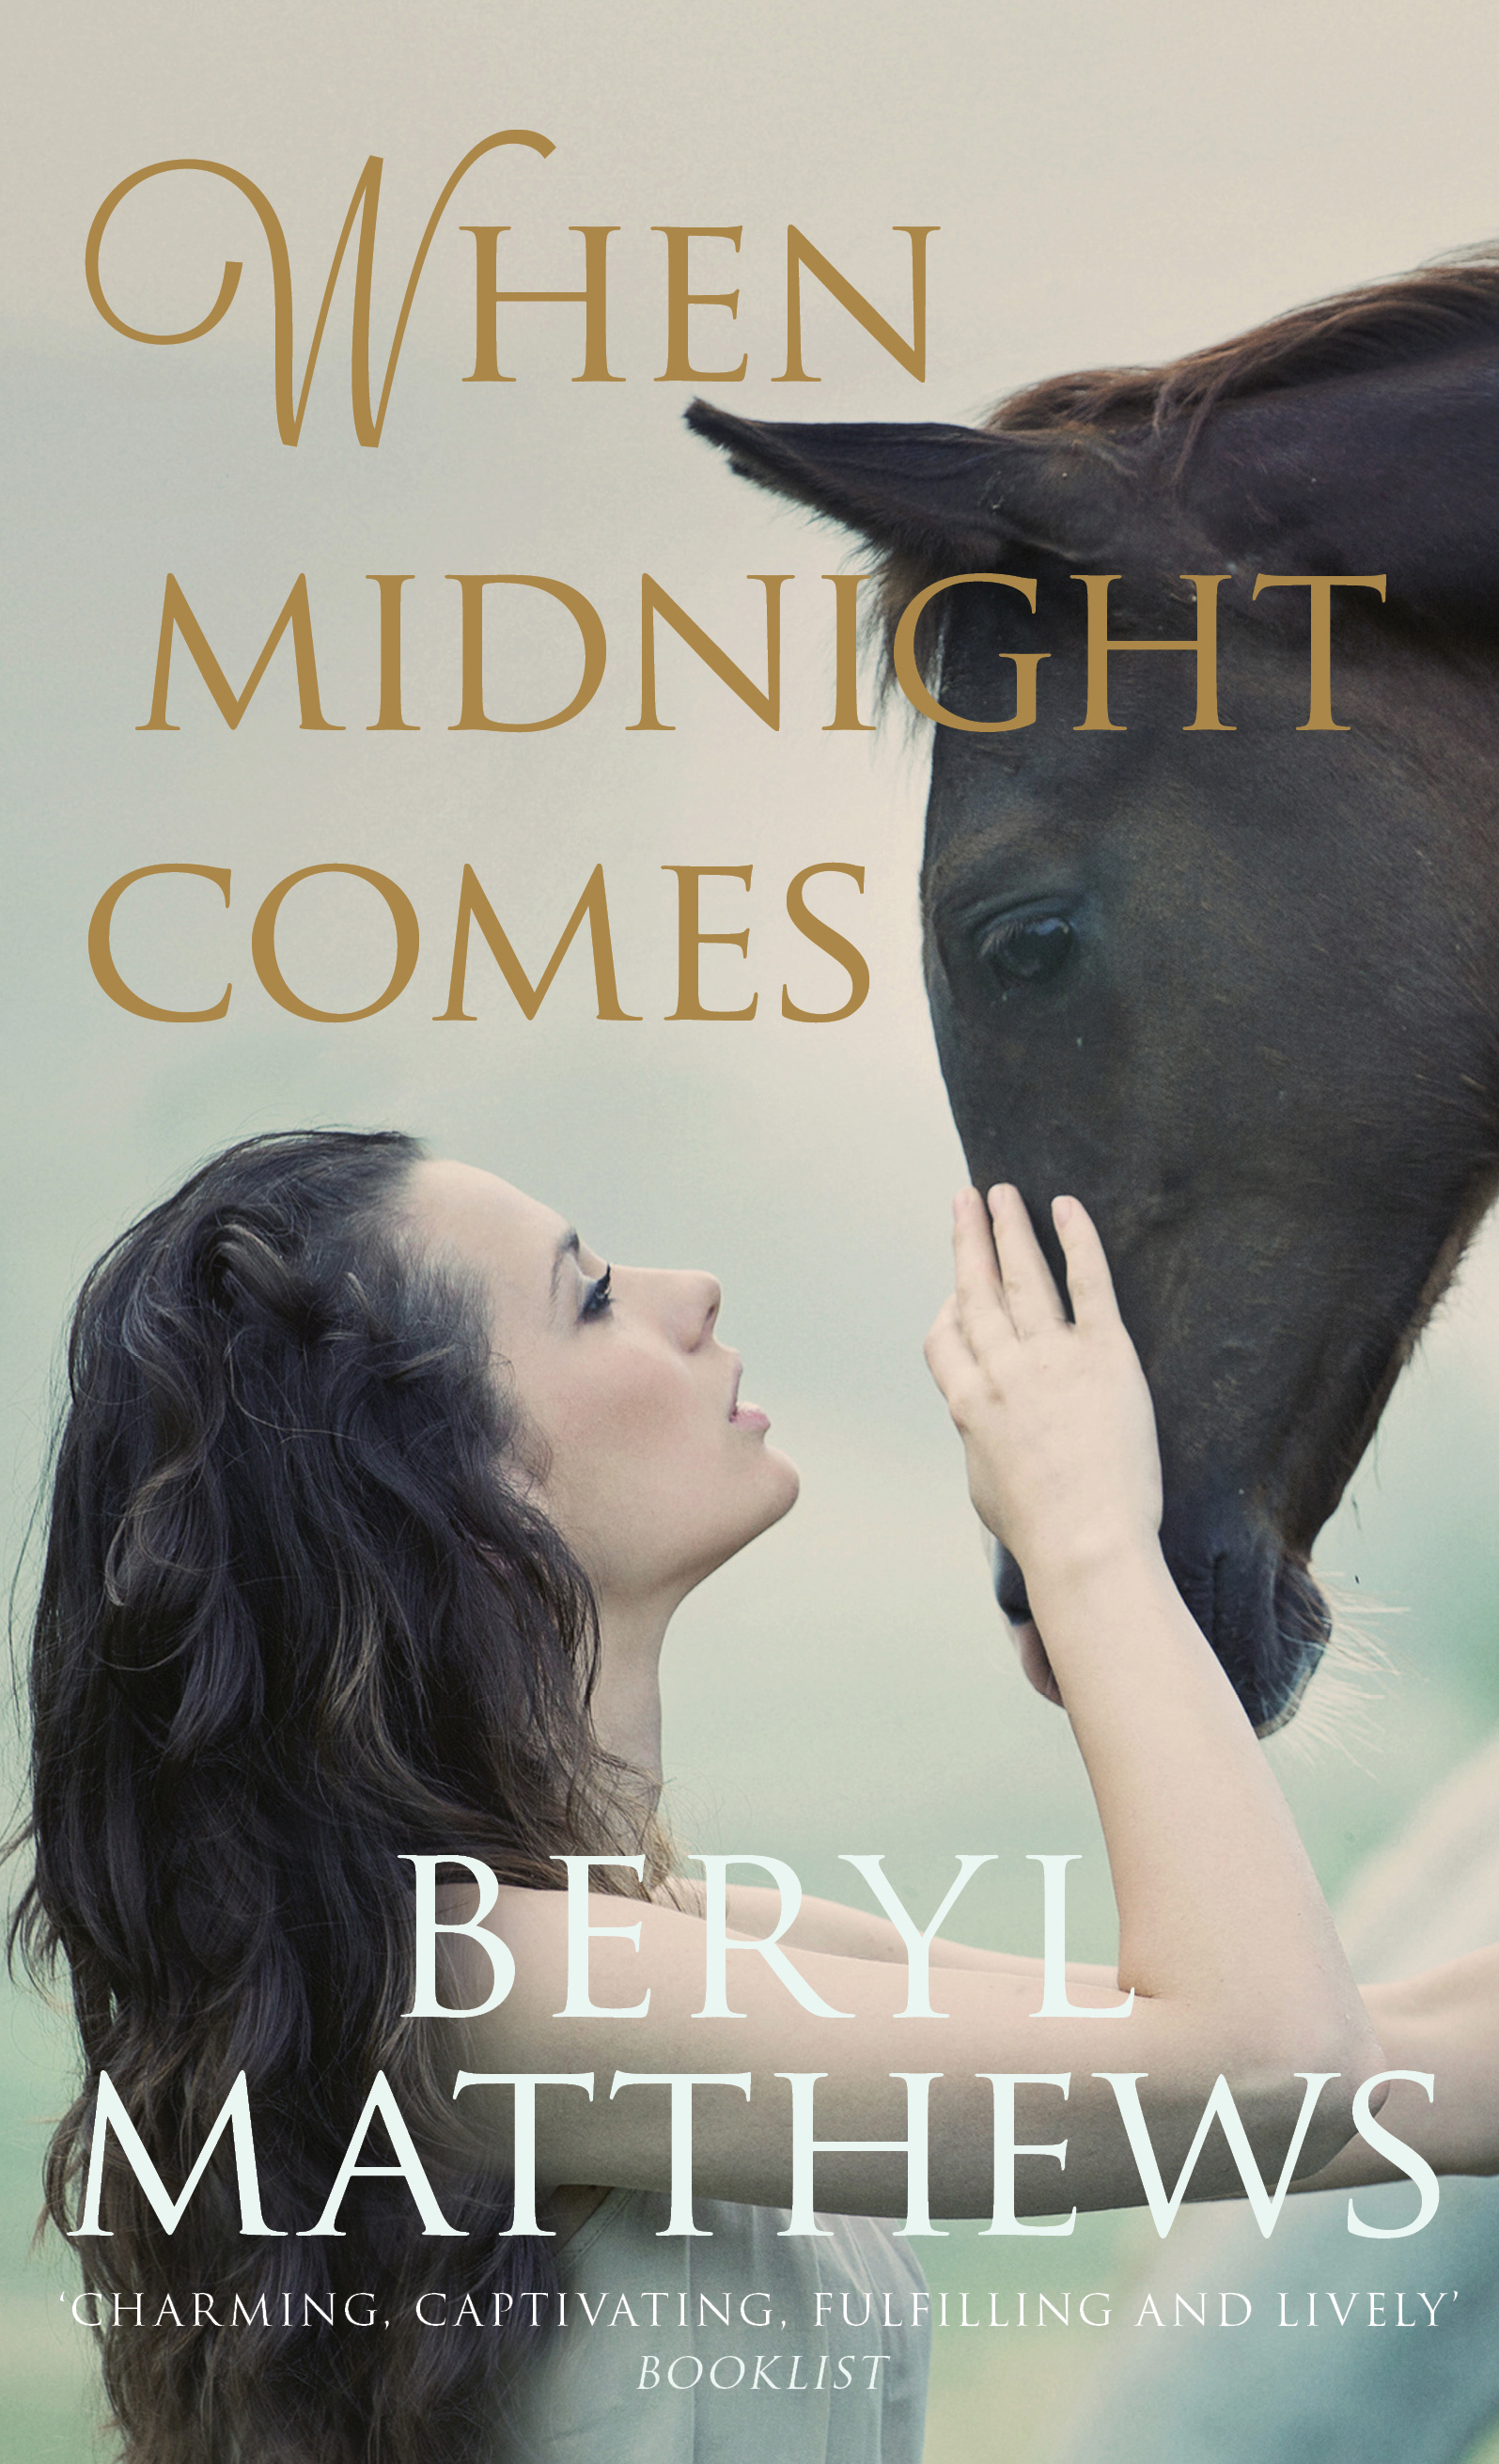 WHEN MIDNIGHT COMES cover Allison and Busby.jpg